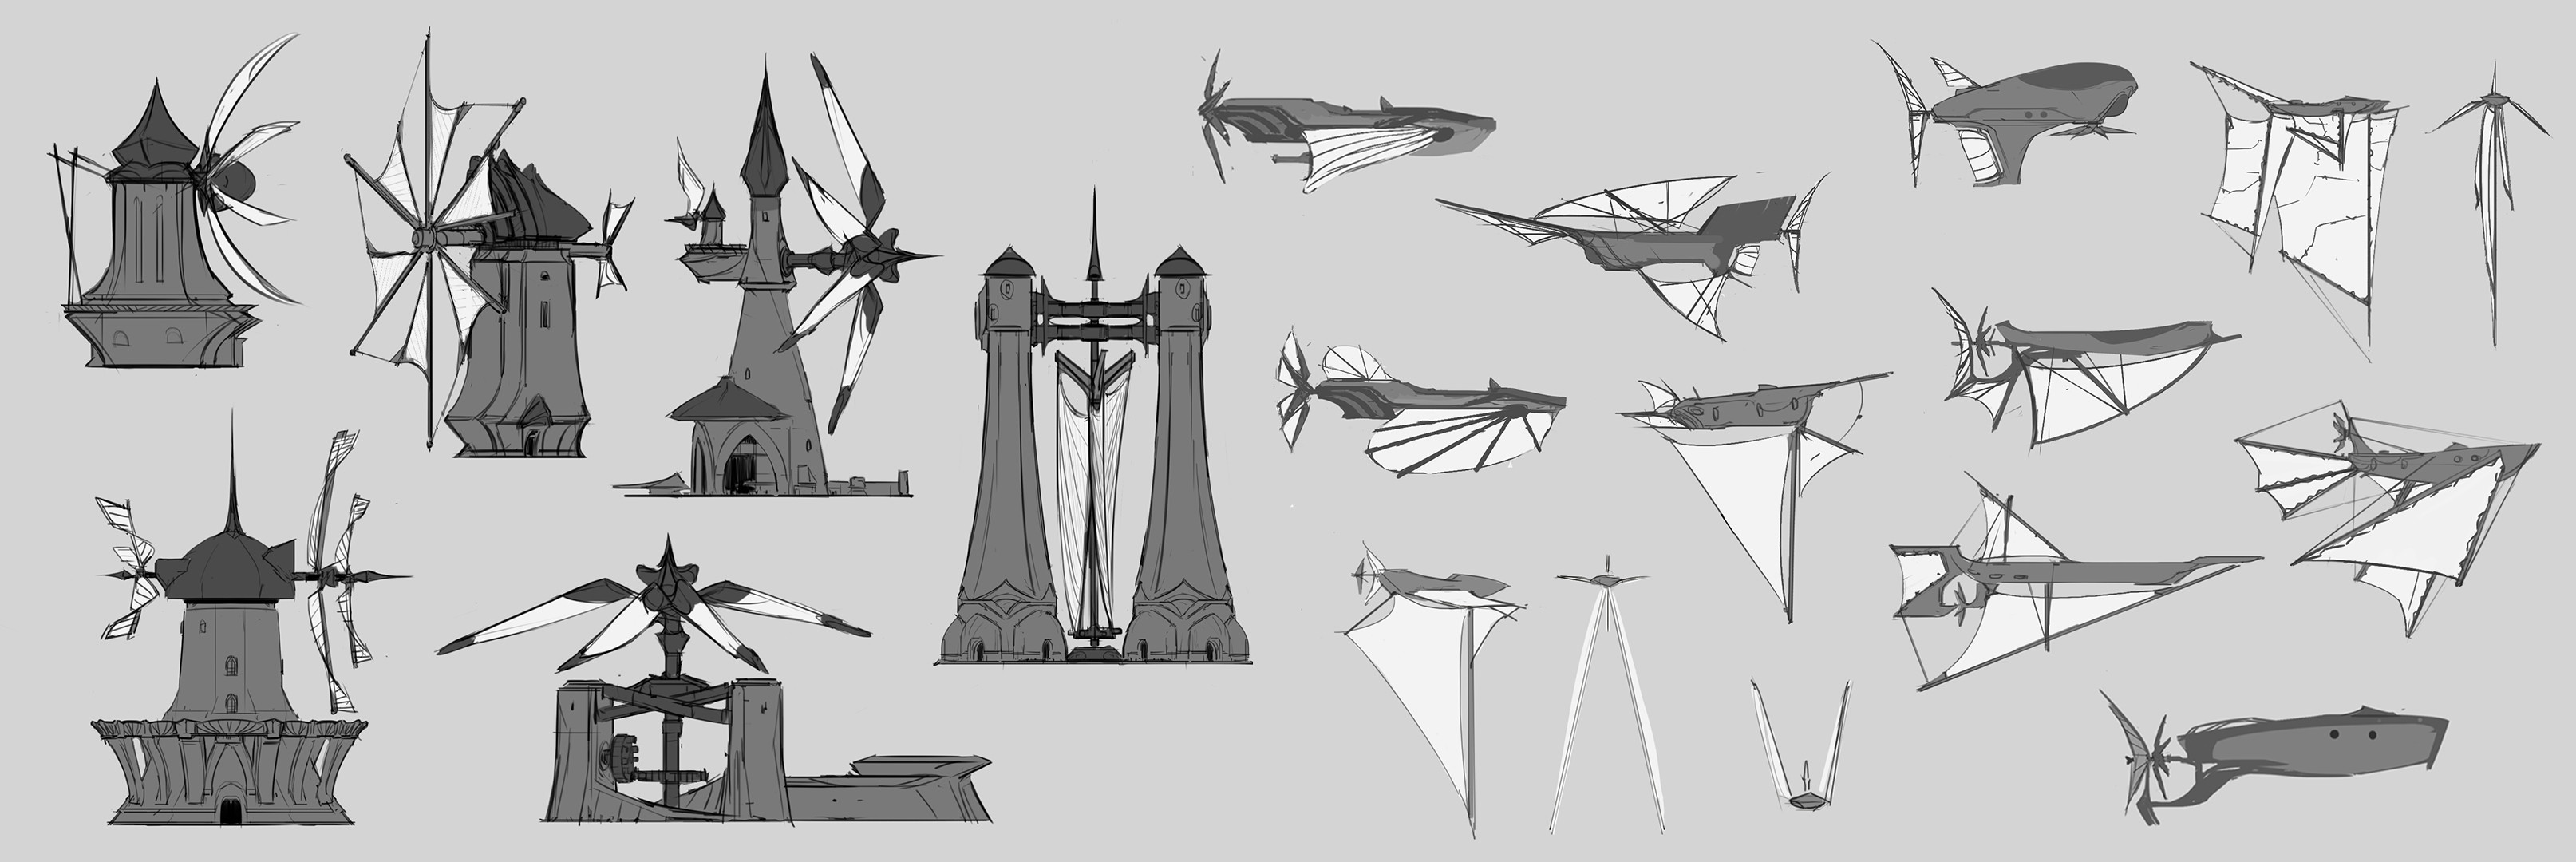 Early design drawings